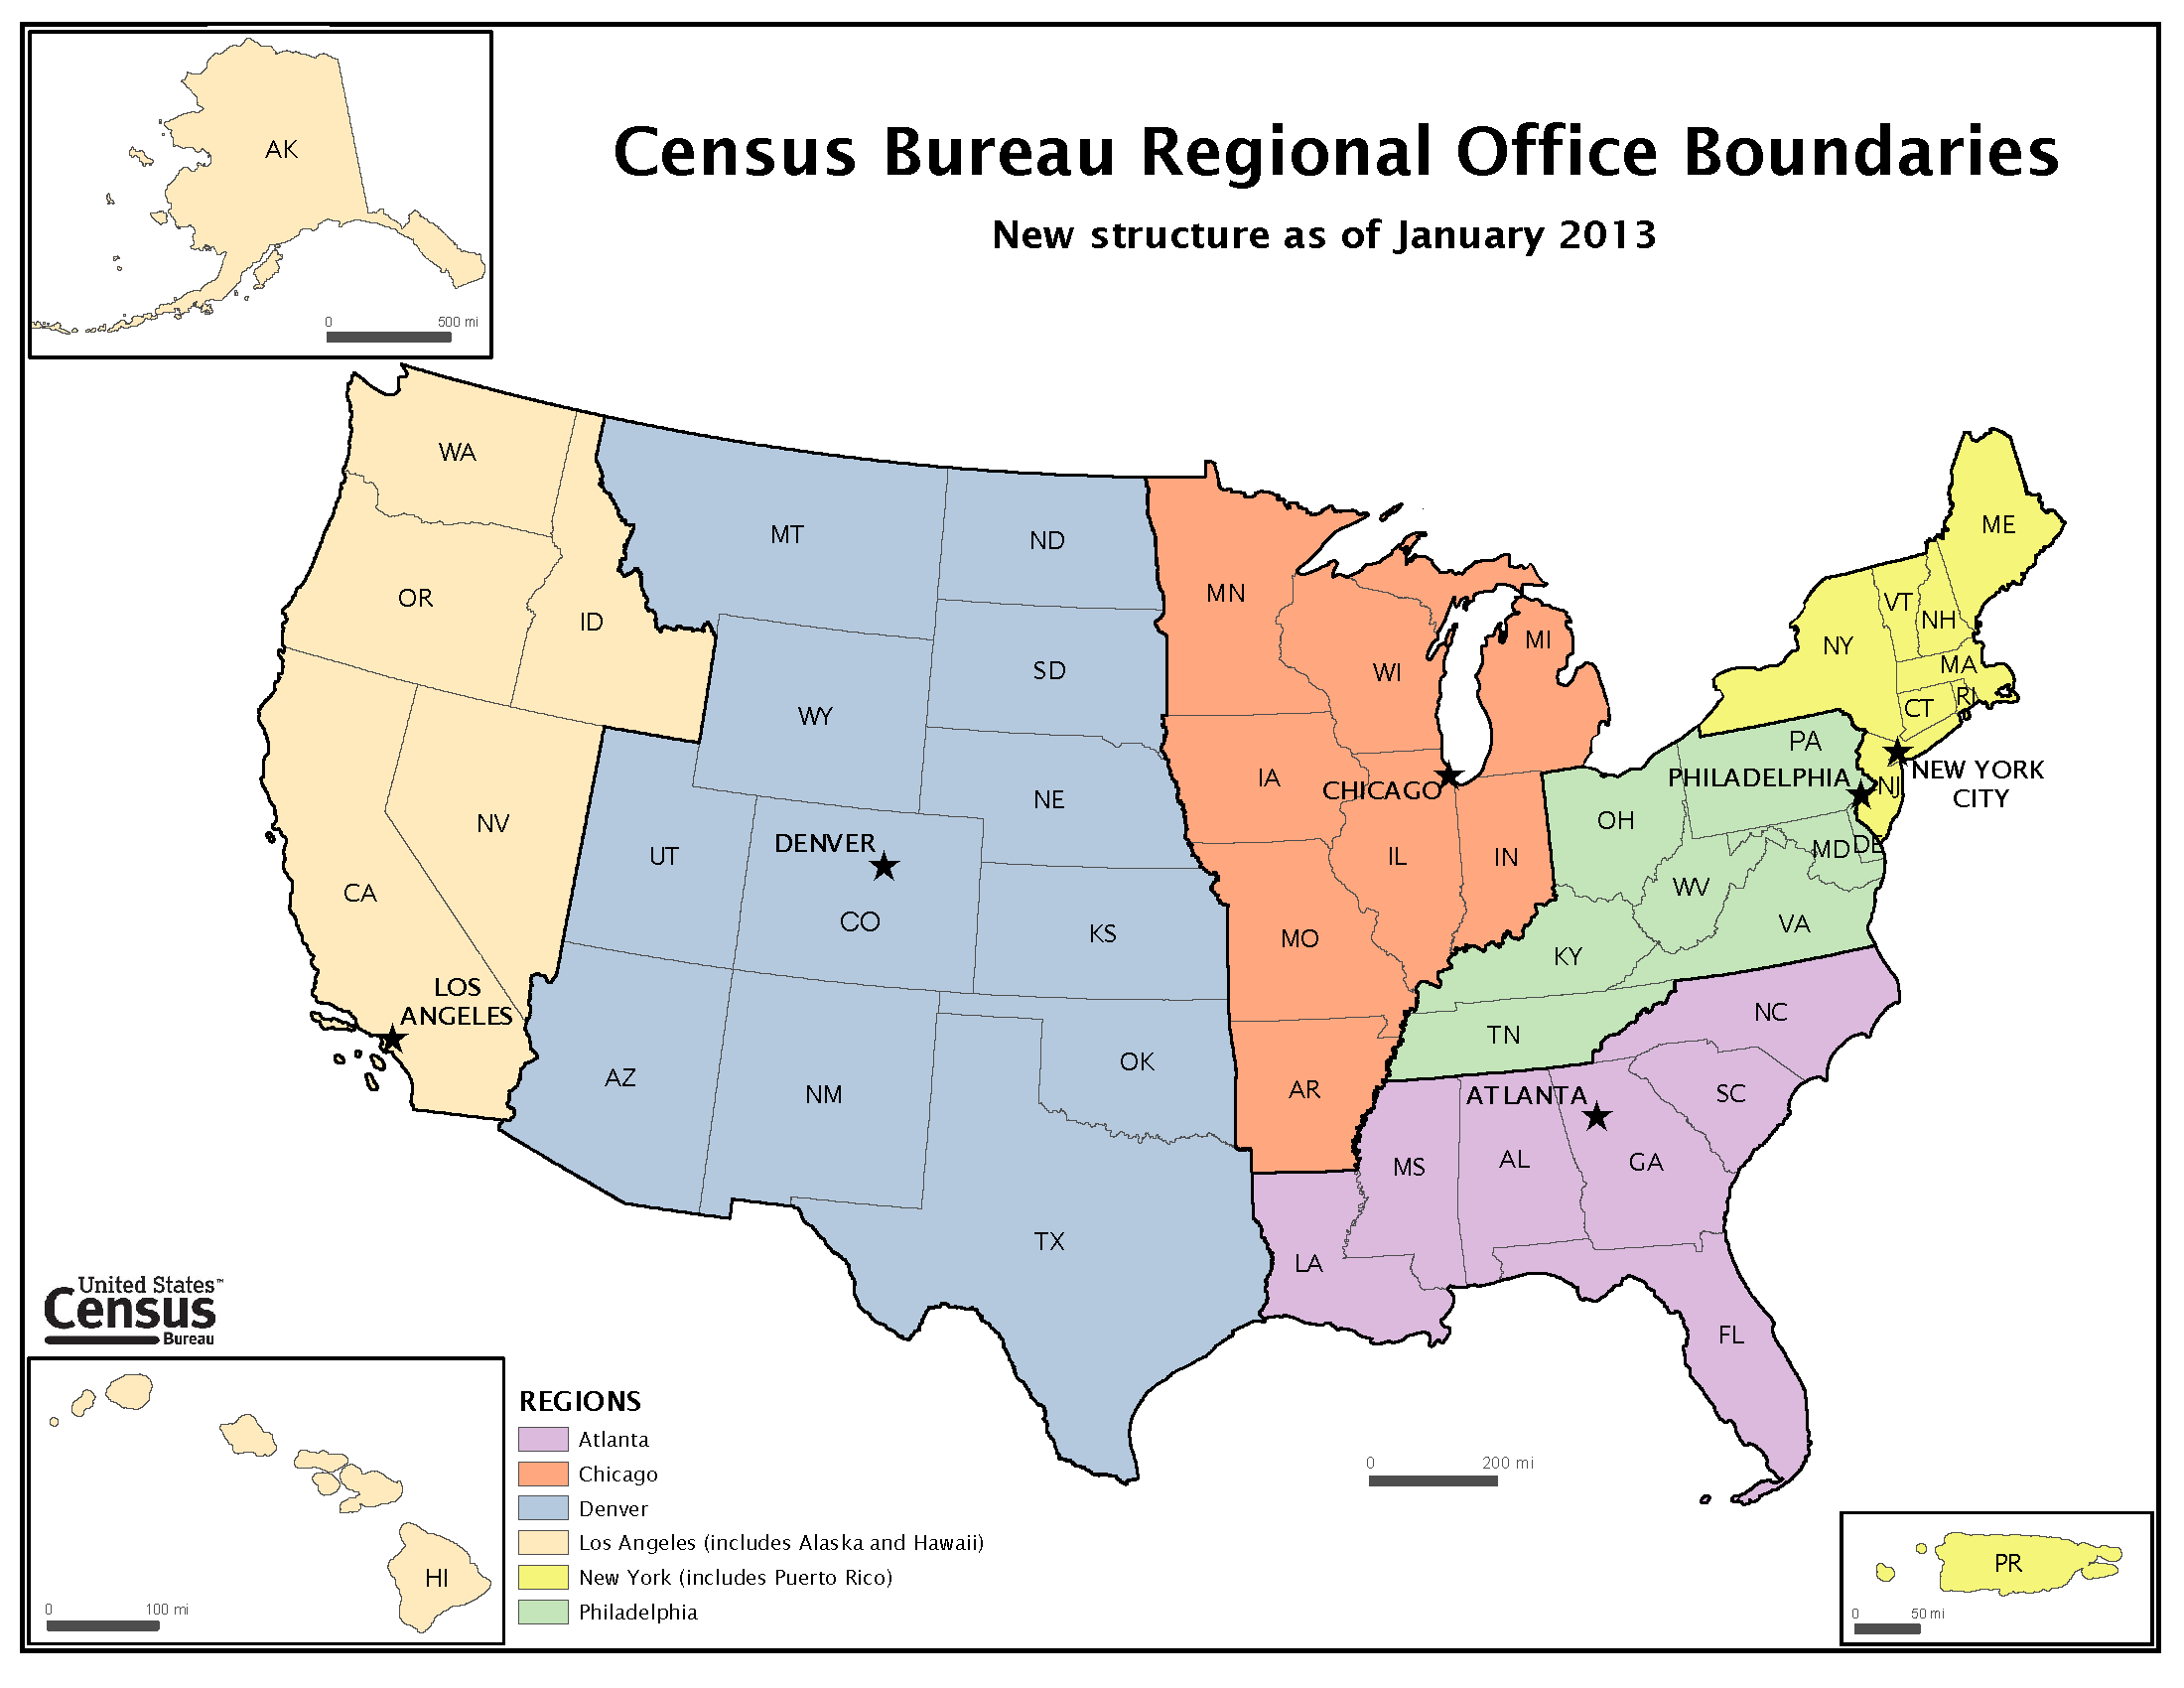 FileCensus Regions And DivisionsPNG Wikimedia Commons - Us census regions and divisions map